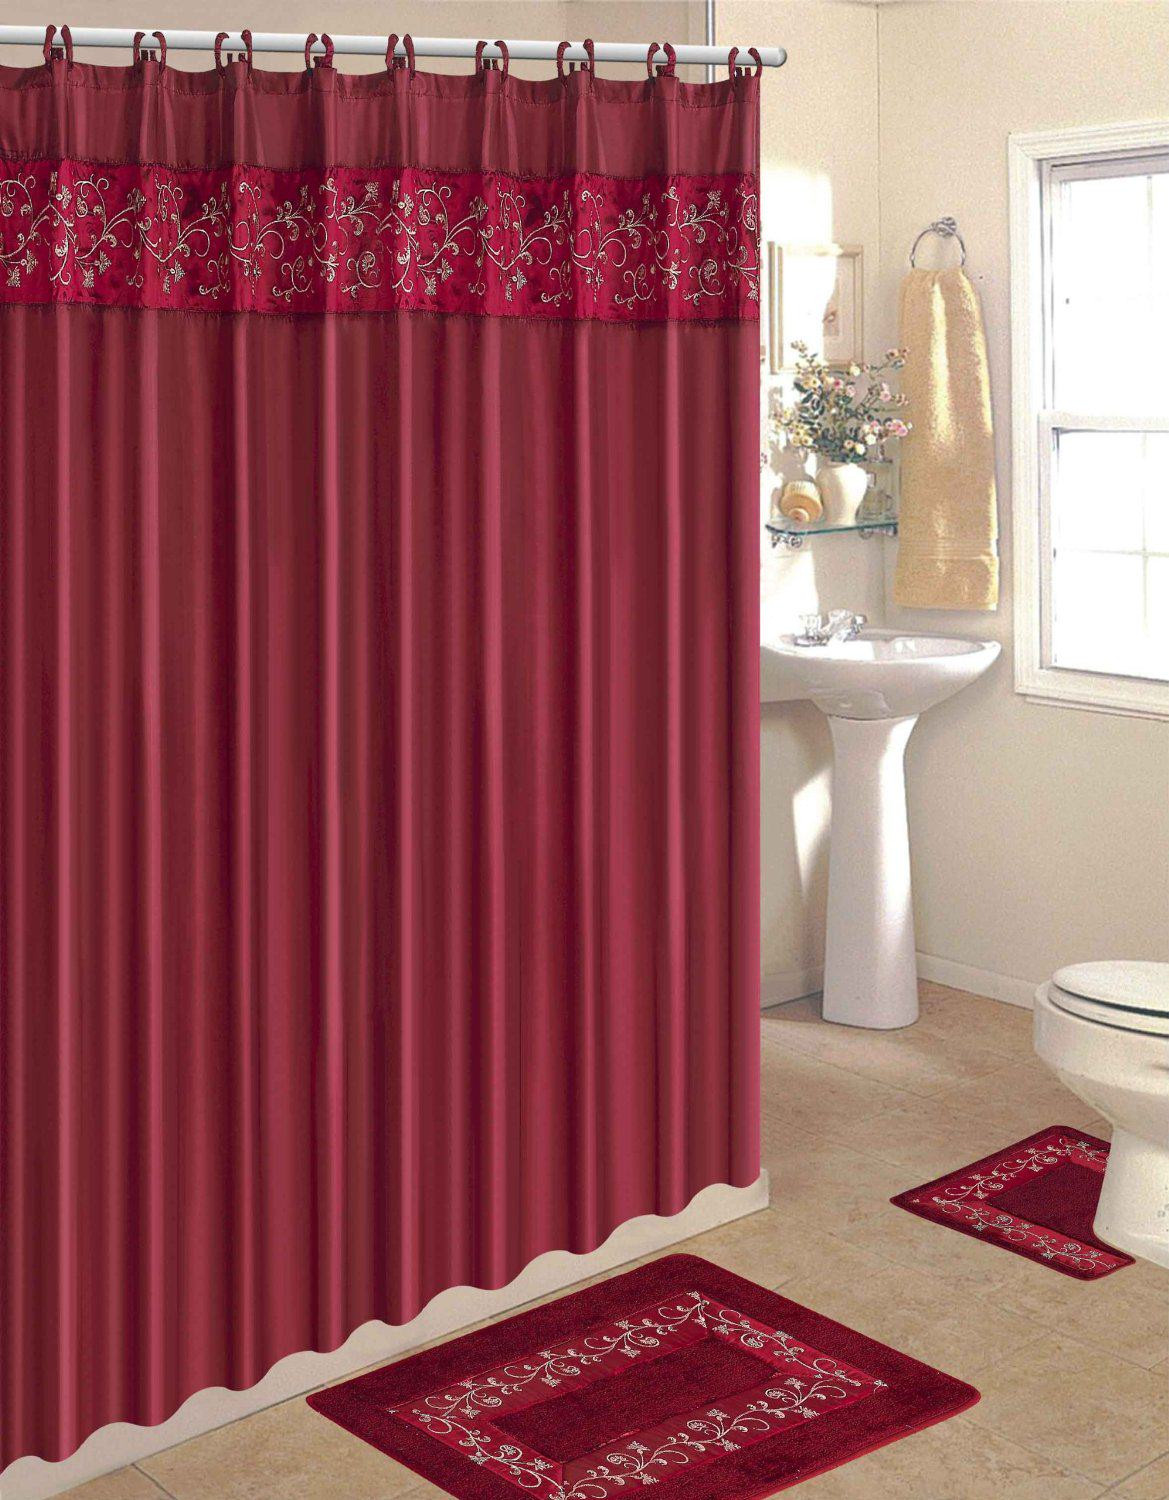 Best ideas about Bathroom Sets With Shower Curtain . Save or Pin Awesome Bathroom Sets To Brighten Your Bathroom Decor Now.